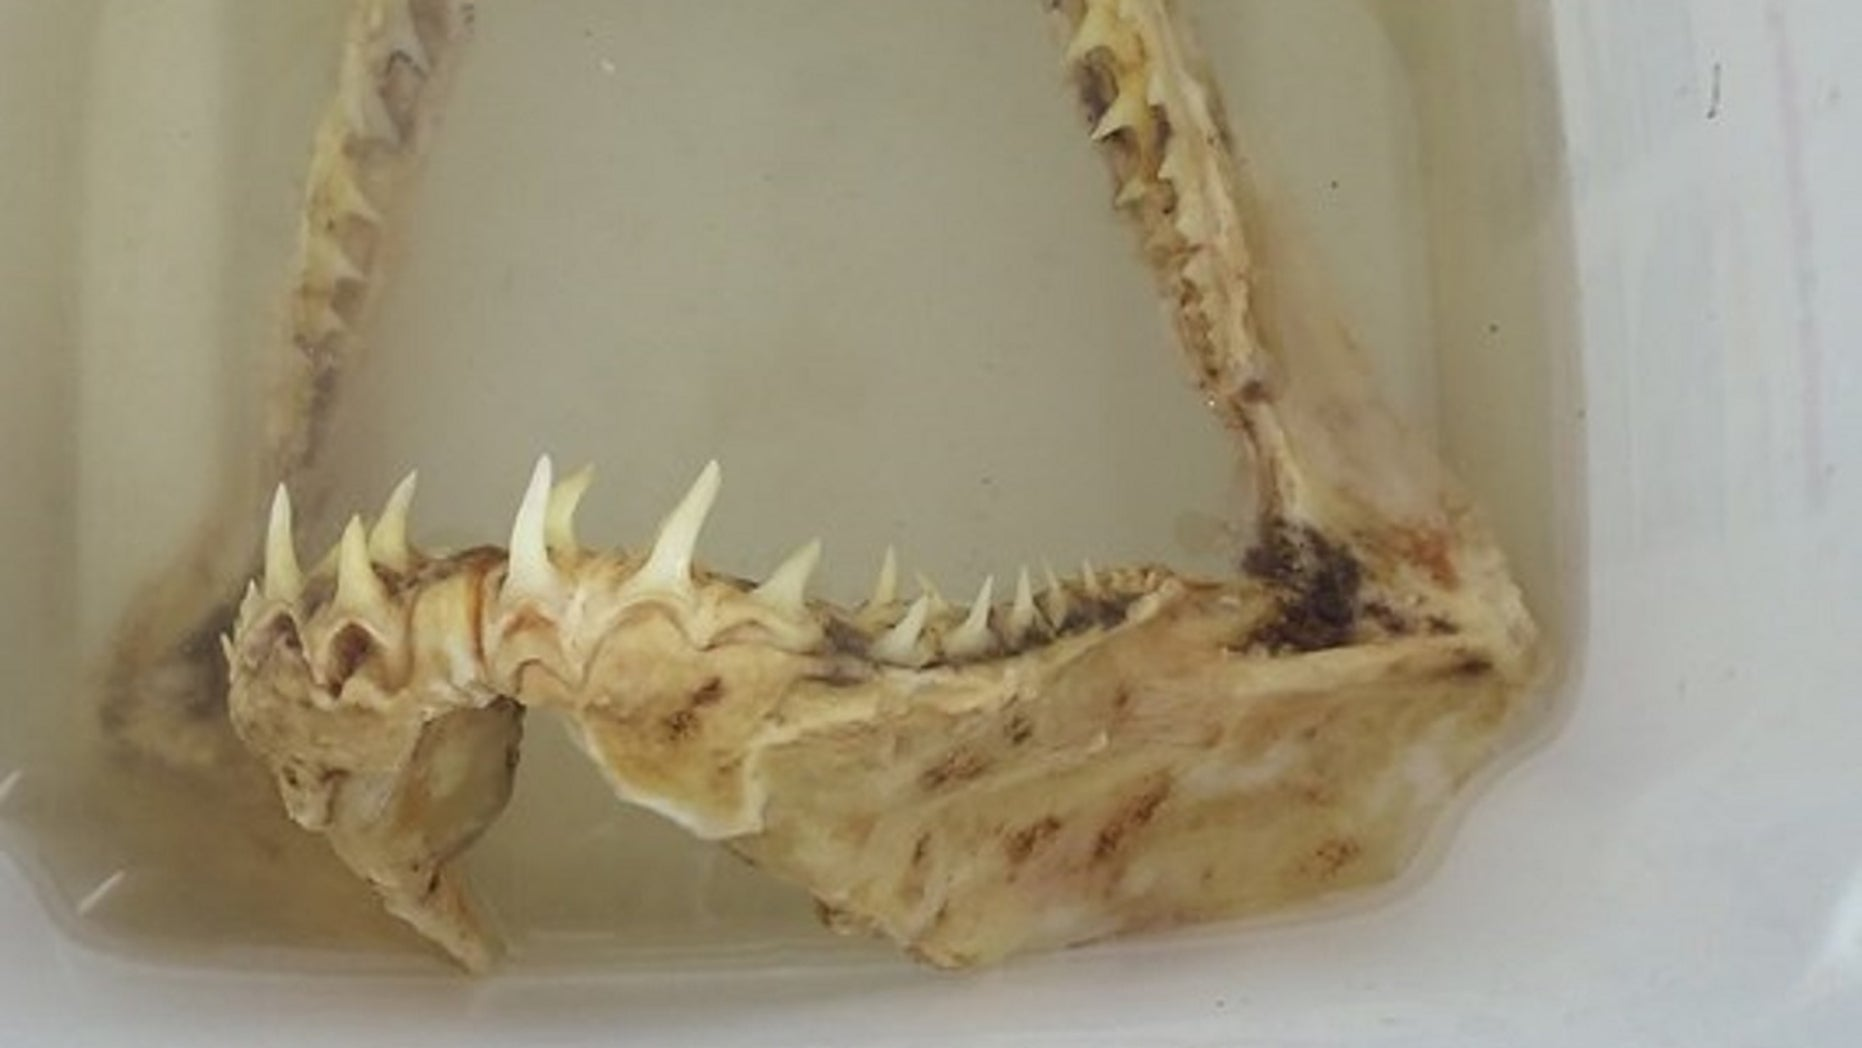 A Minnesota man caught a shark jawbone on the Mississippi River. The jawbone has been identified as coming from a sand tiger shark.